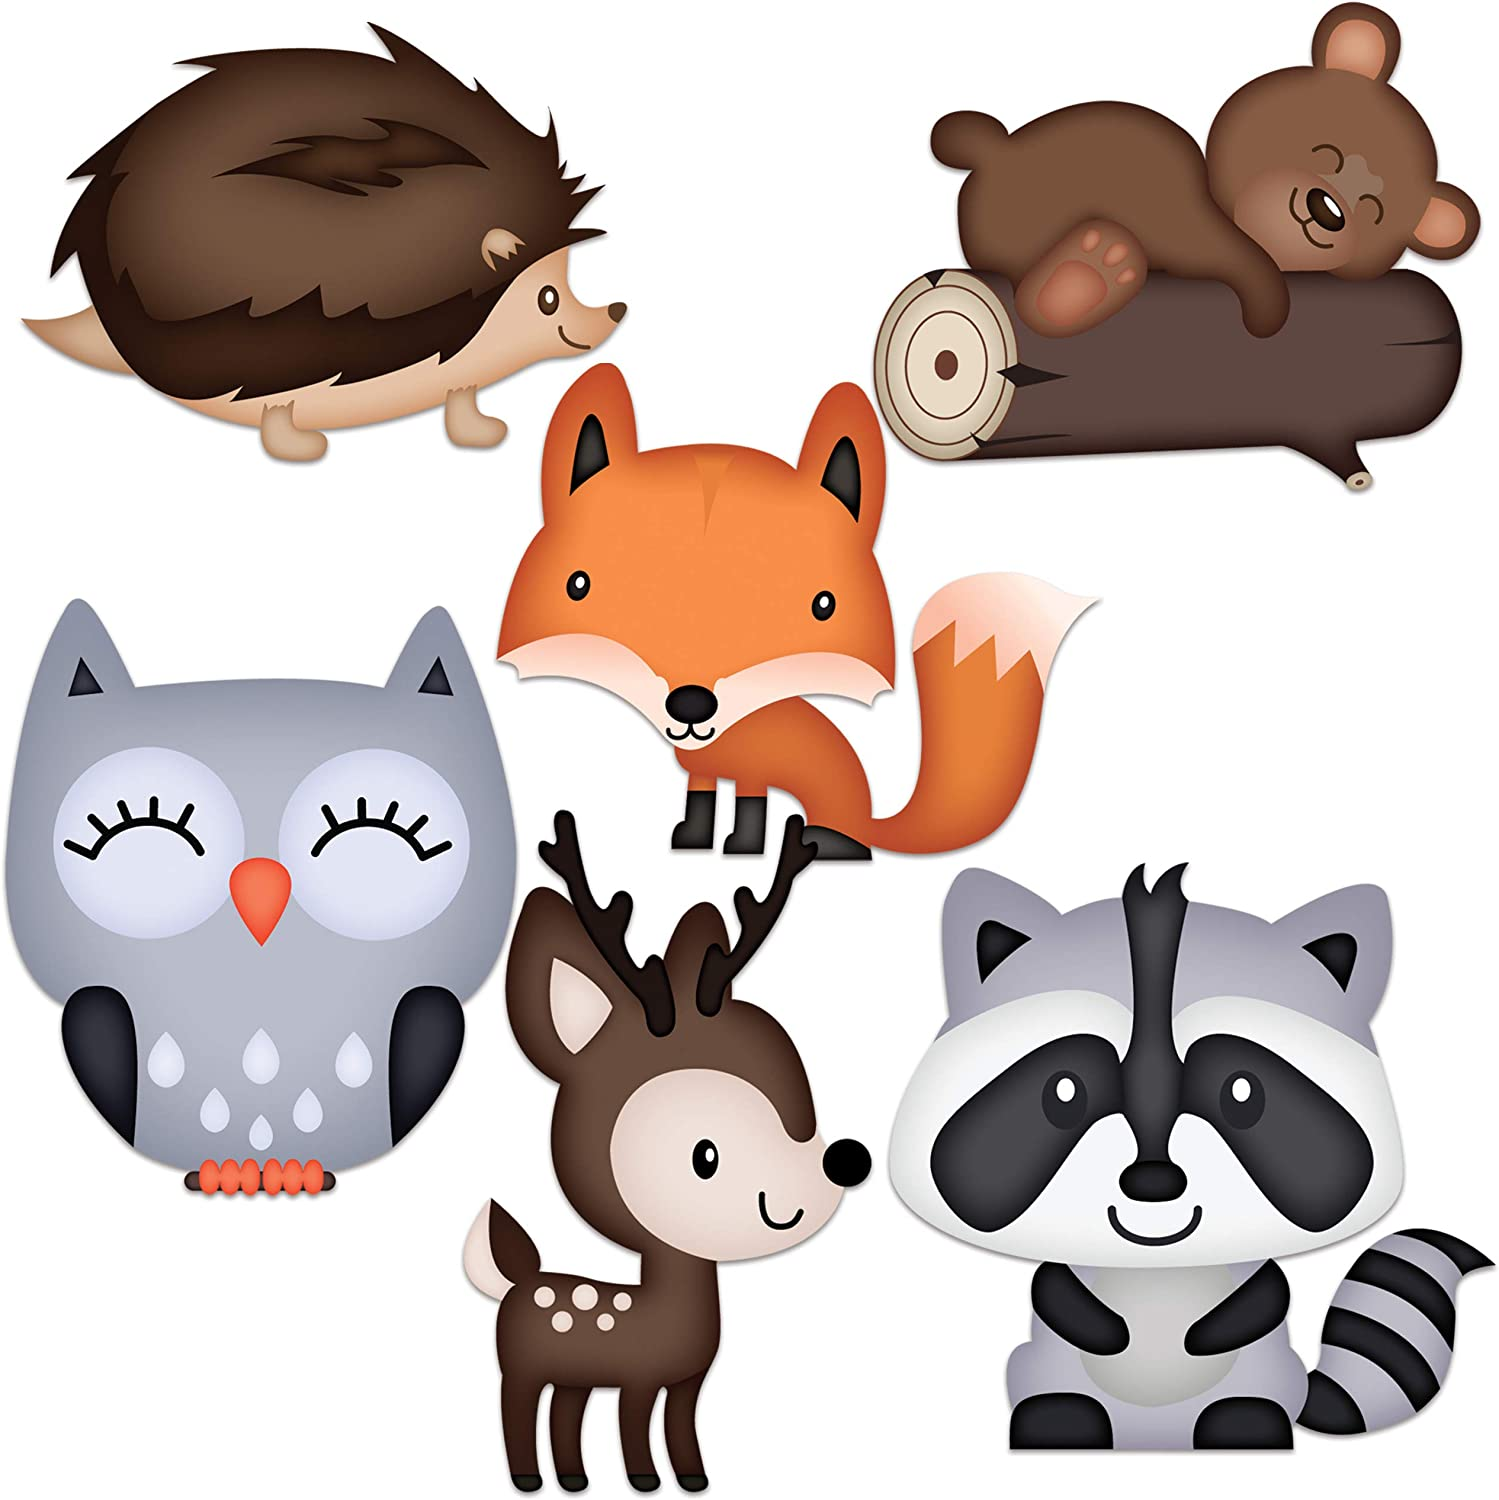 Woodland Baby Shower Decorations - Large Adorable Woodland Animals Cutouts Are Easily Seen - Great for Woodland Creatures Baby Shower Or Fall Themed Baby Shower - Figures includes Fox Deer Owl